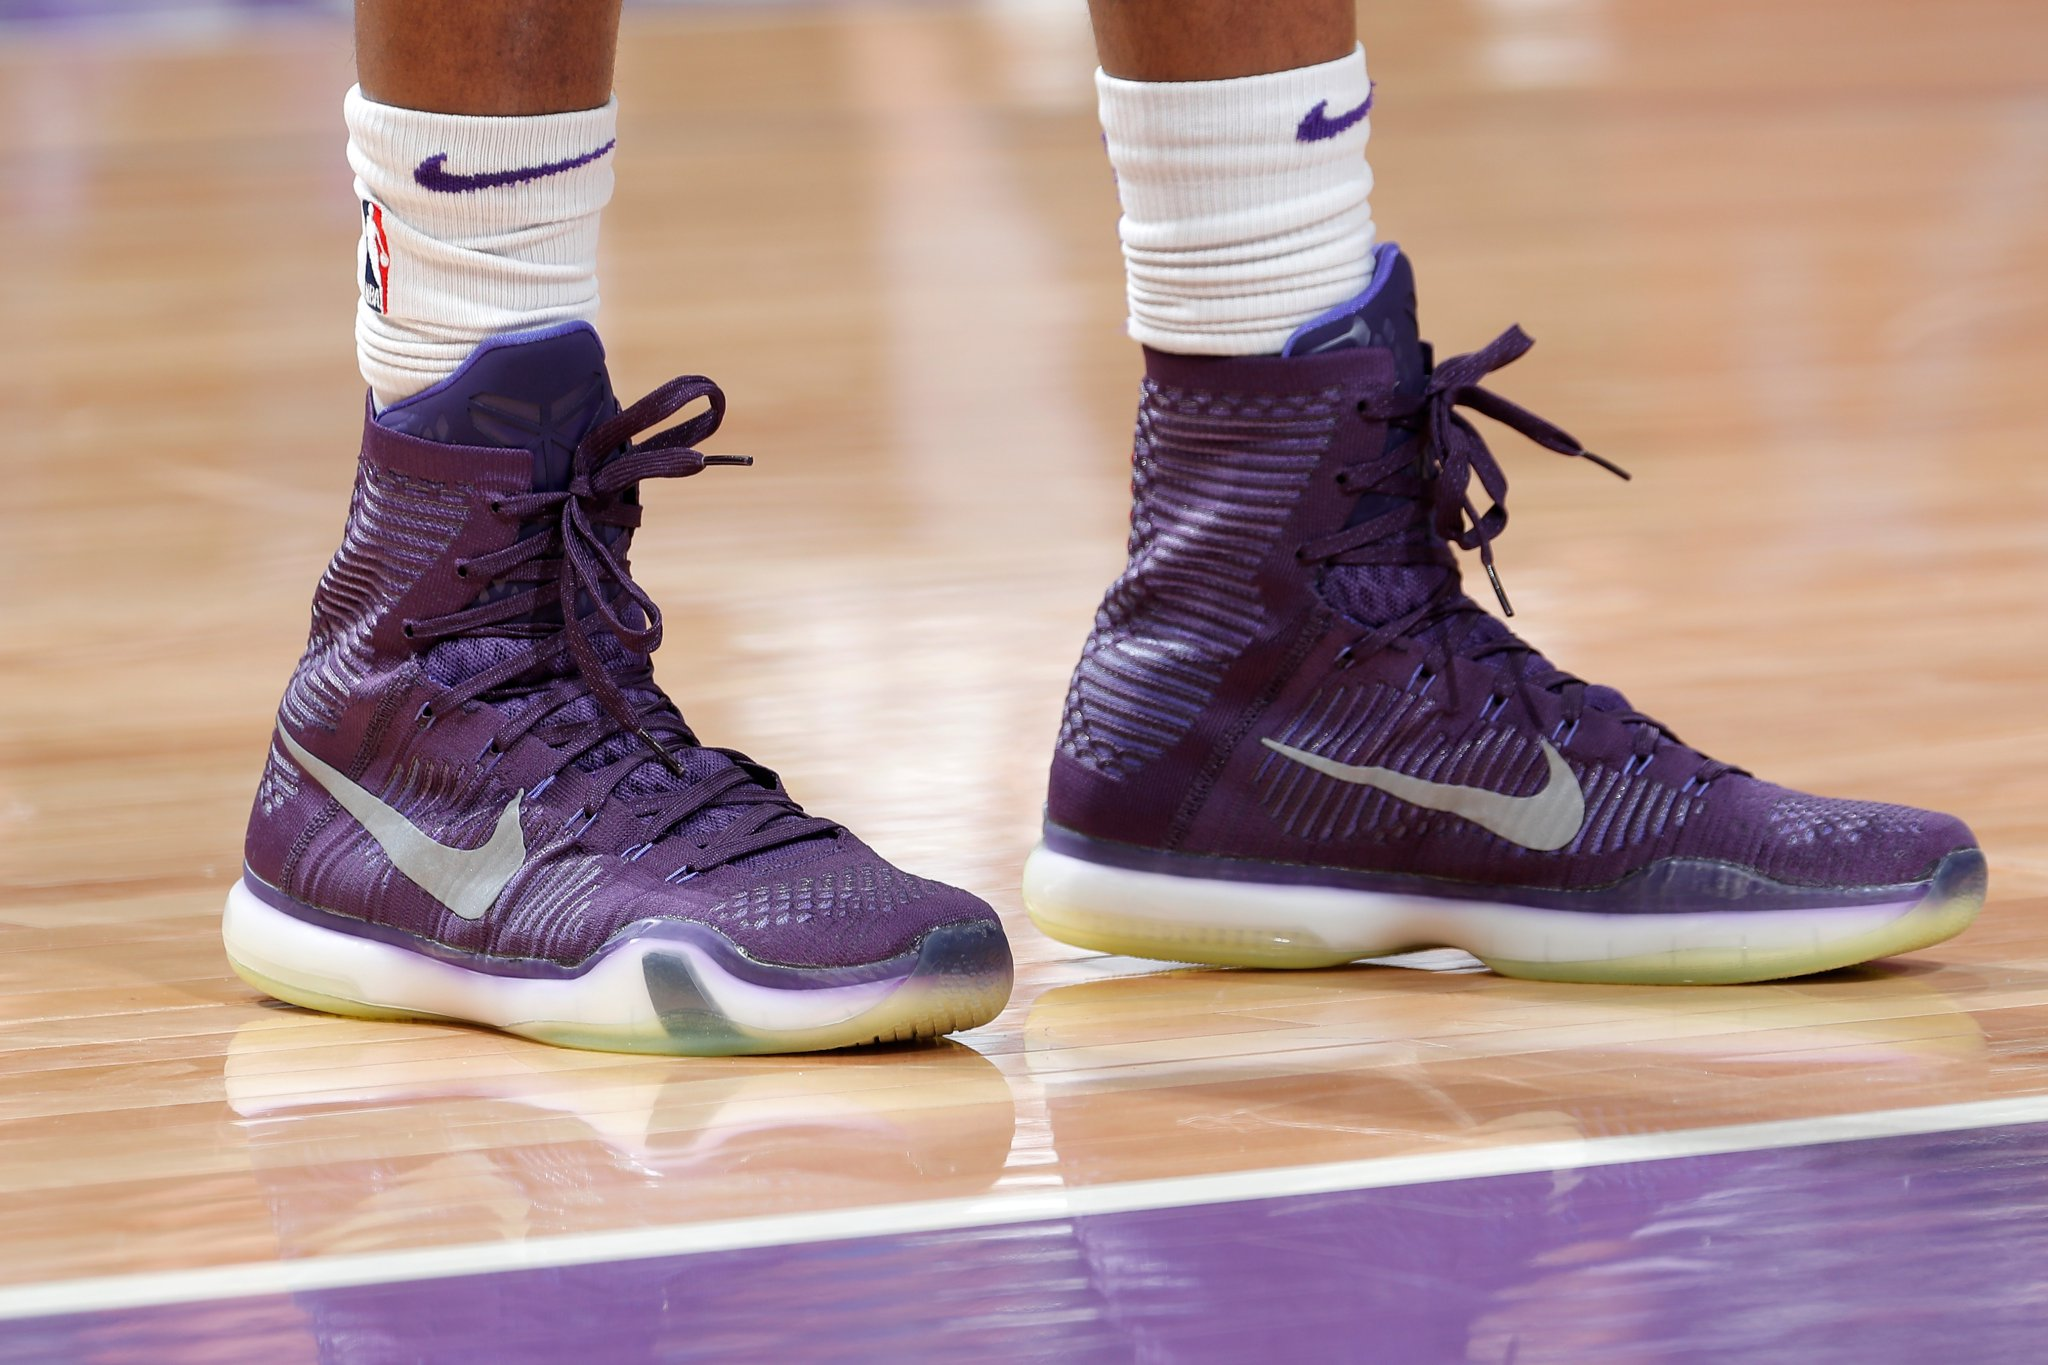 De'Aaron Fox balls out wearing the Nike Kobe X Elite - Brooklyn Nets vs. Sacramento Kings | March 19, 201927 Points9 Assists4 Rebounds1 Steal10-20 Shooting